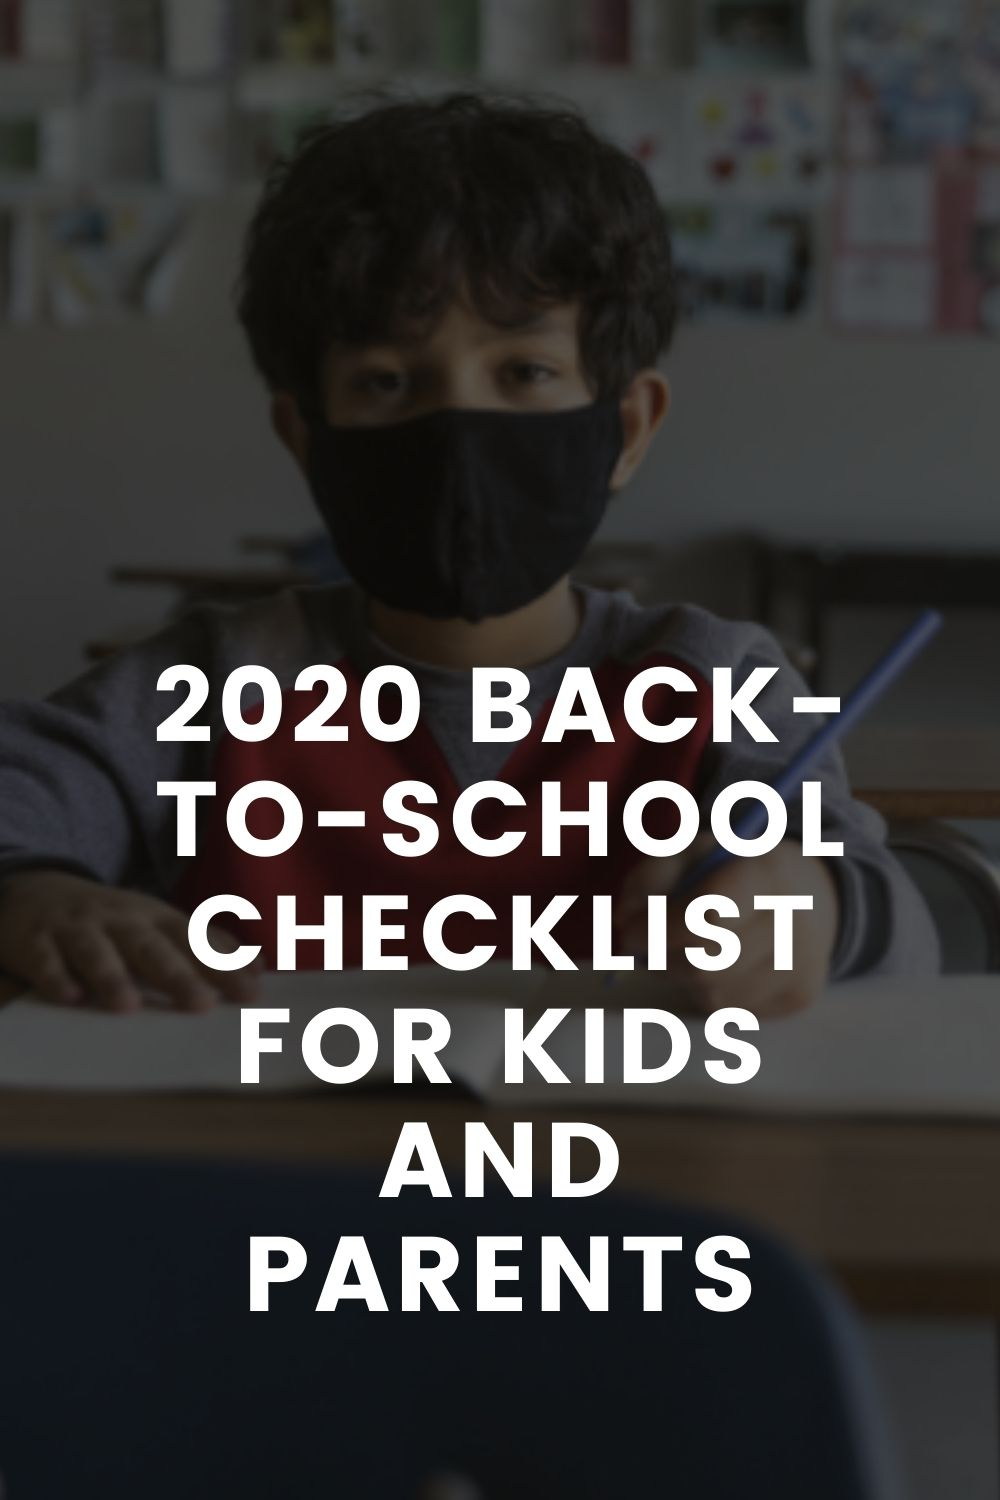 2020 Back-To-School Checklist for Kids and Parents